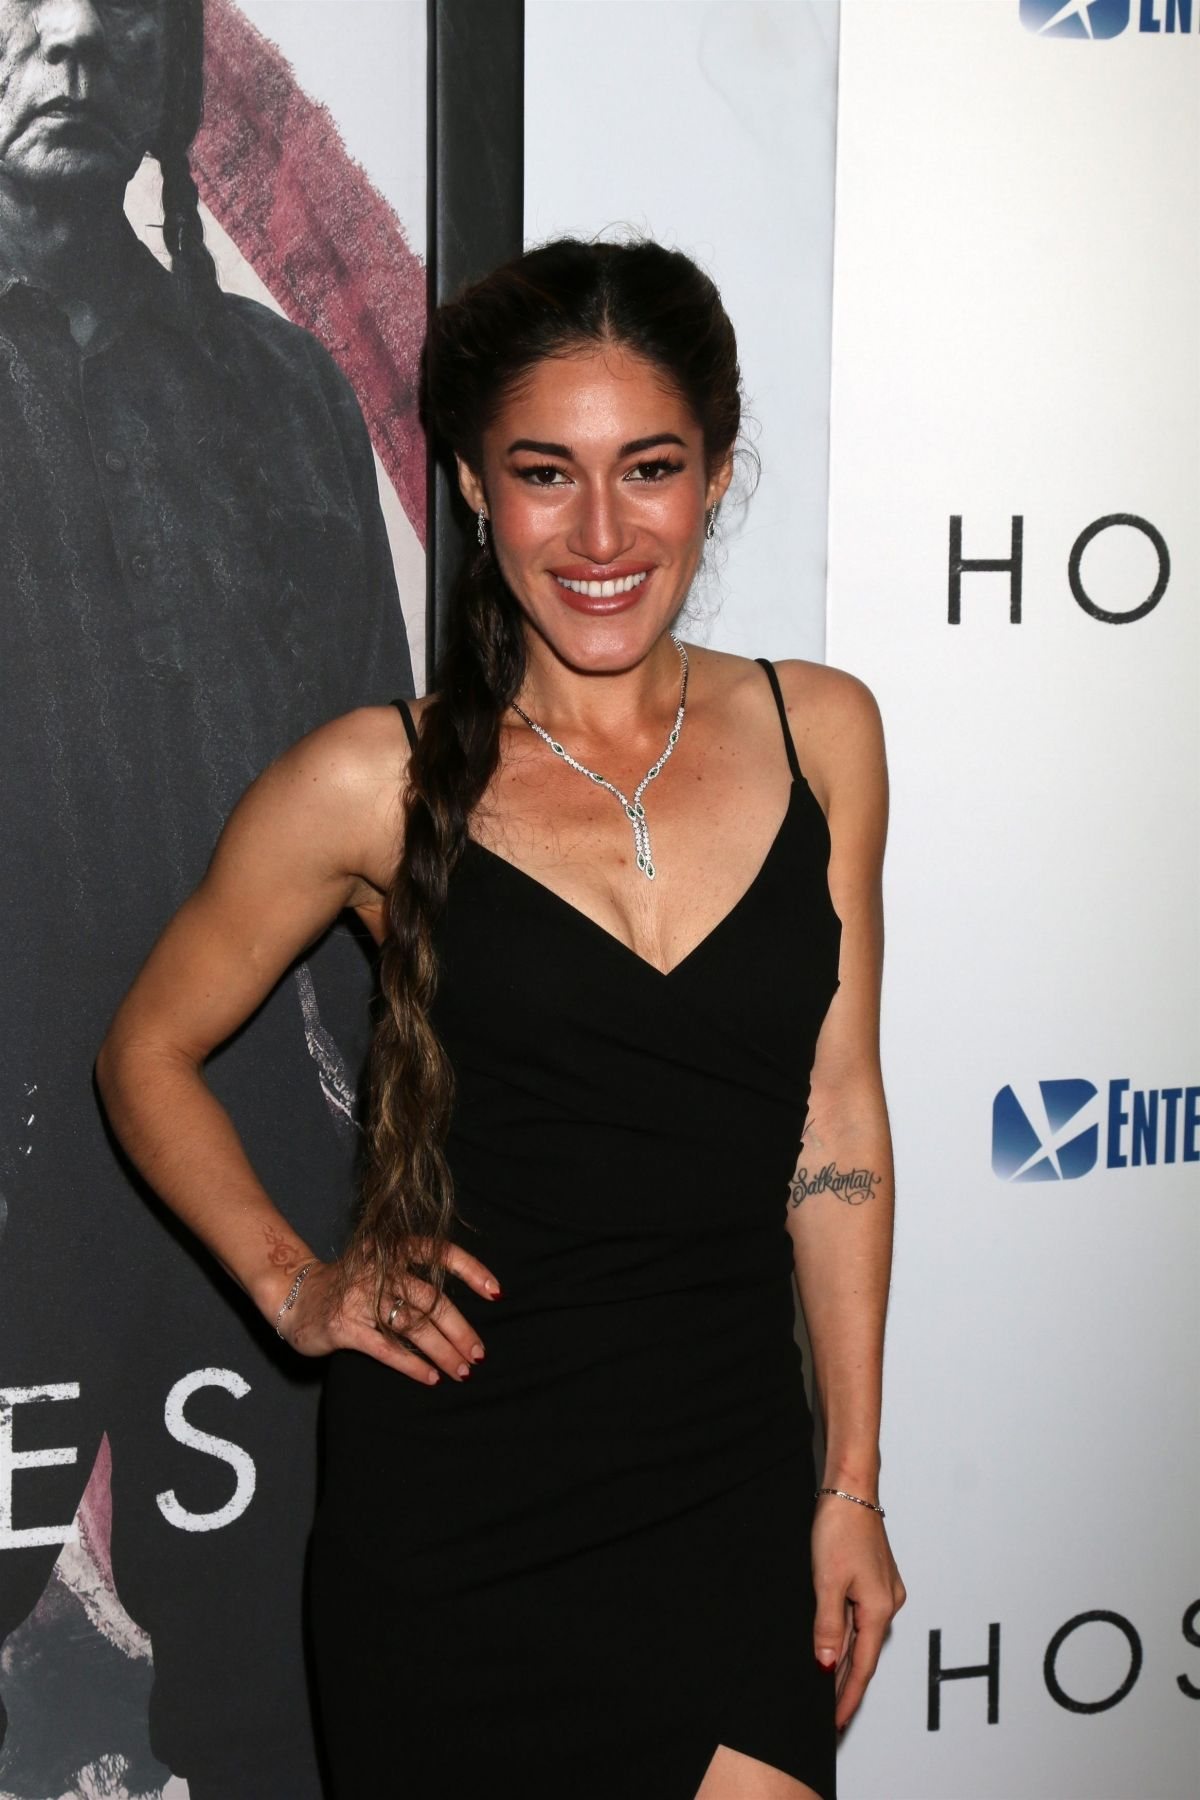 qorianka kilcher 2017 - photo #13